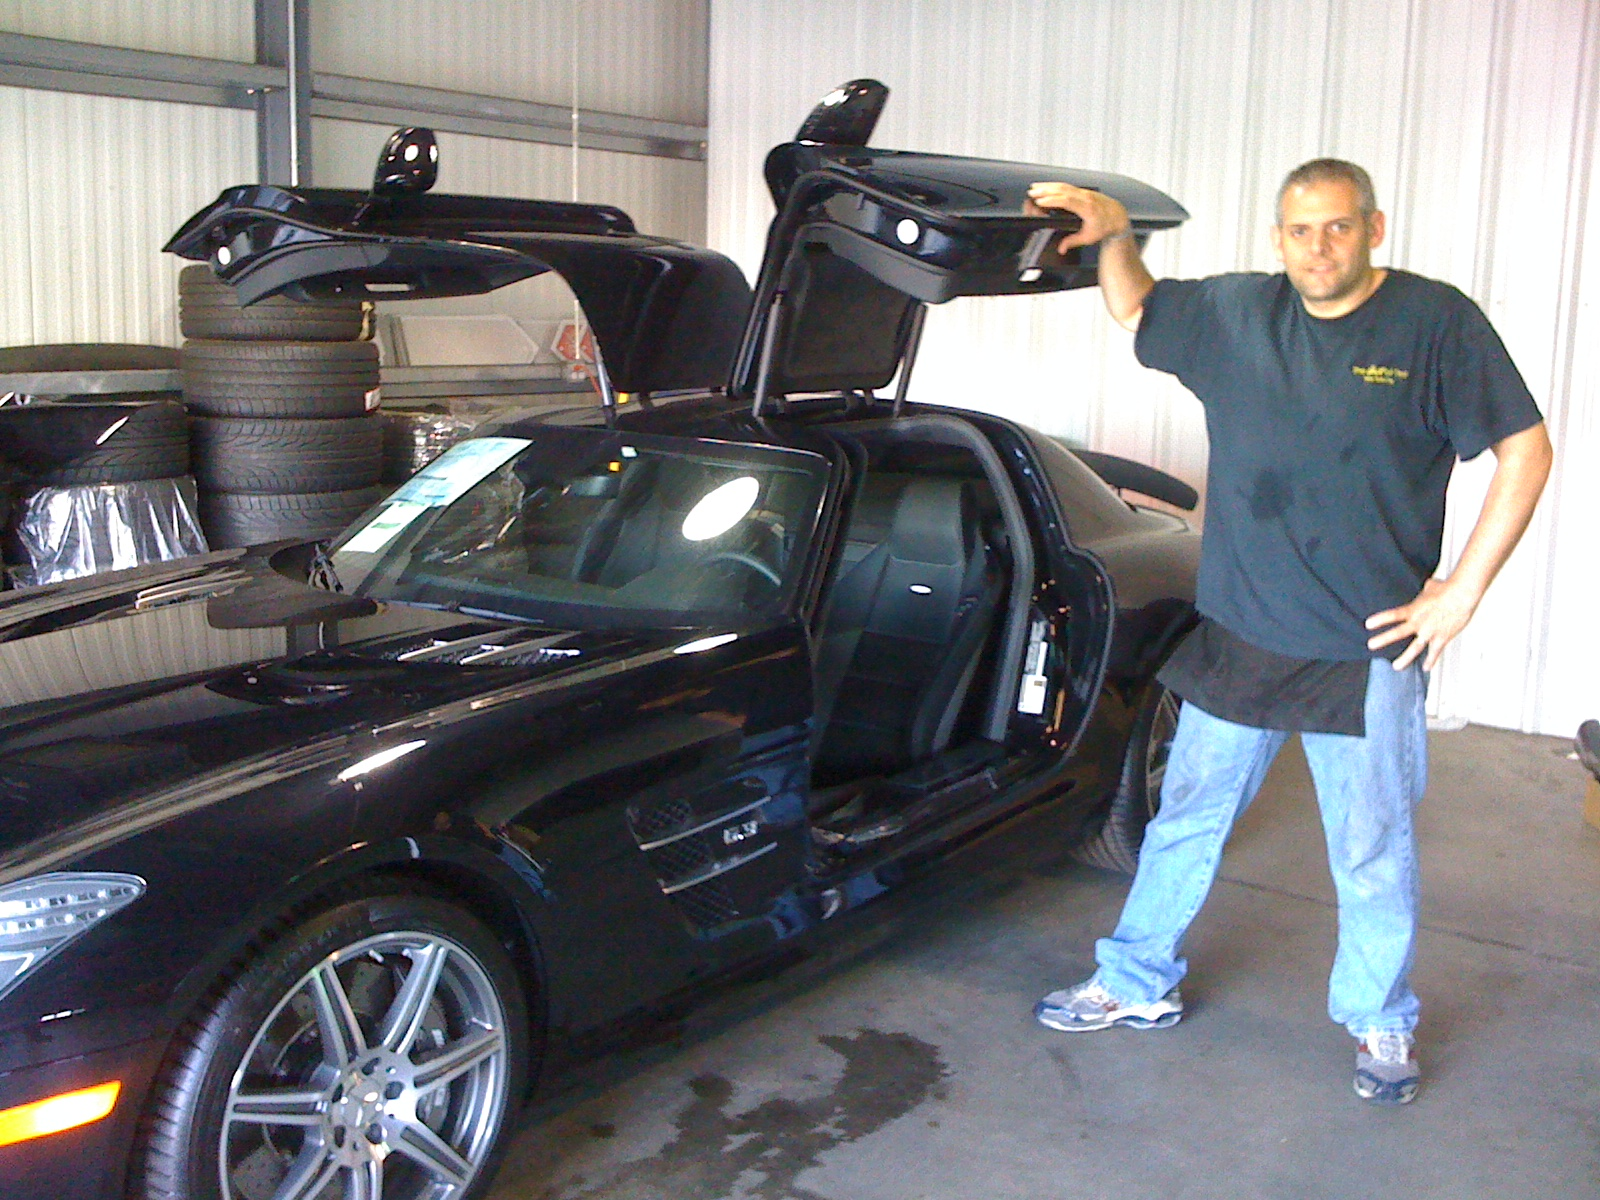 2012 Mercedes Benz SLS 63. Goldwing doors made this car a challenge to install film.